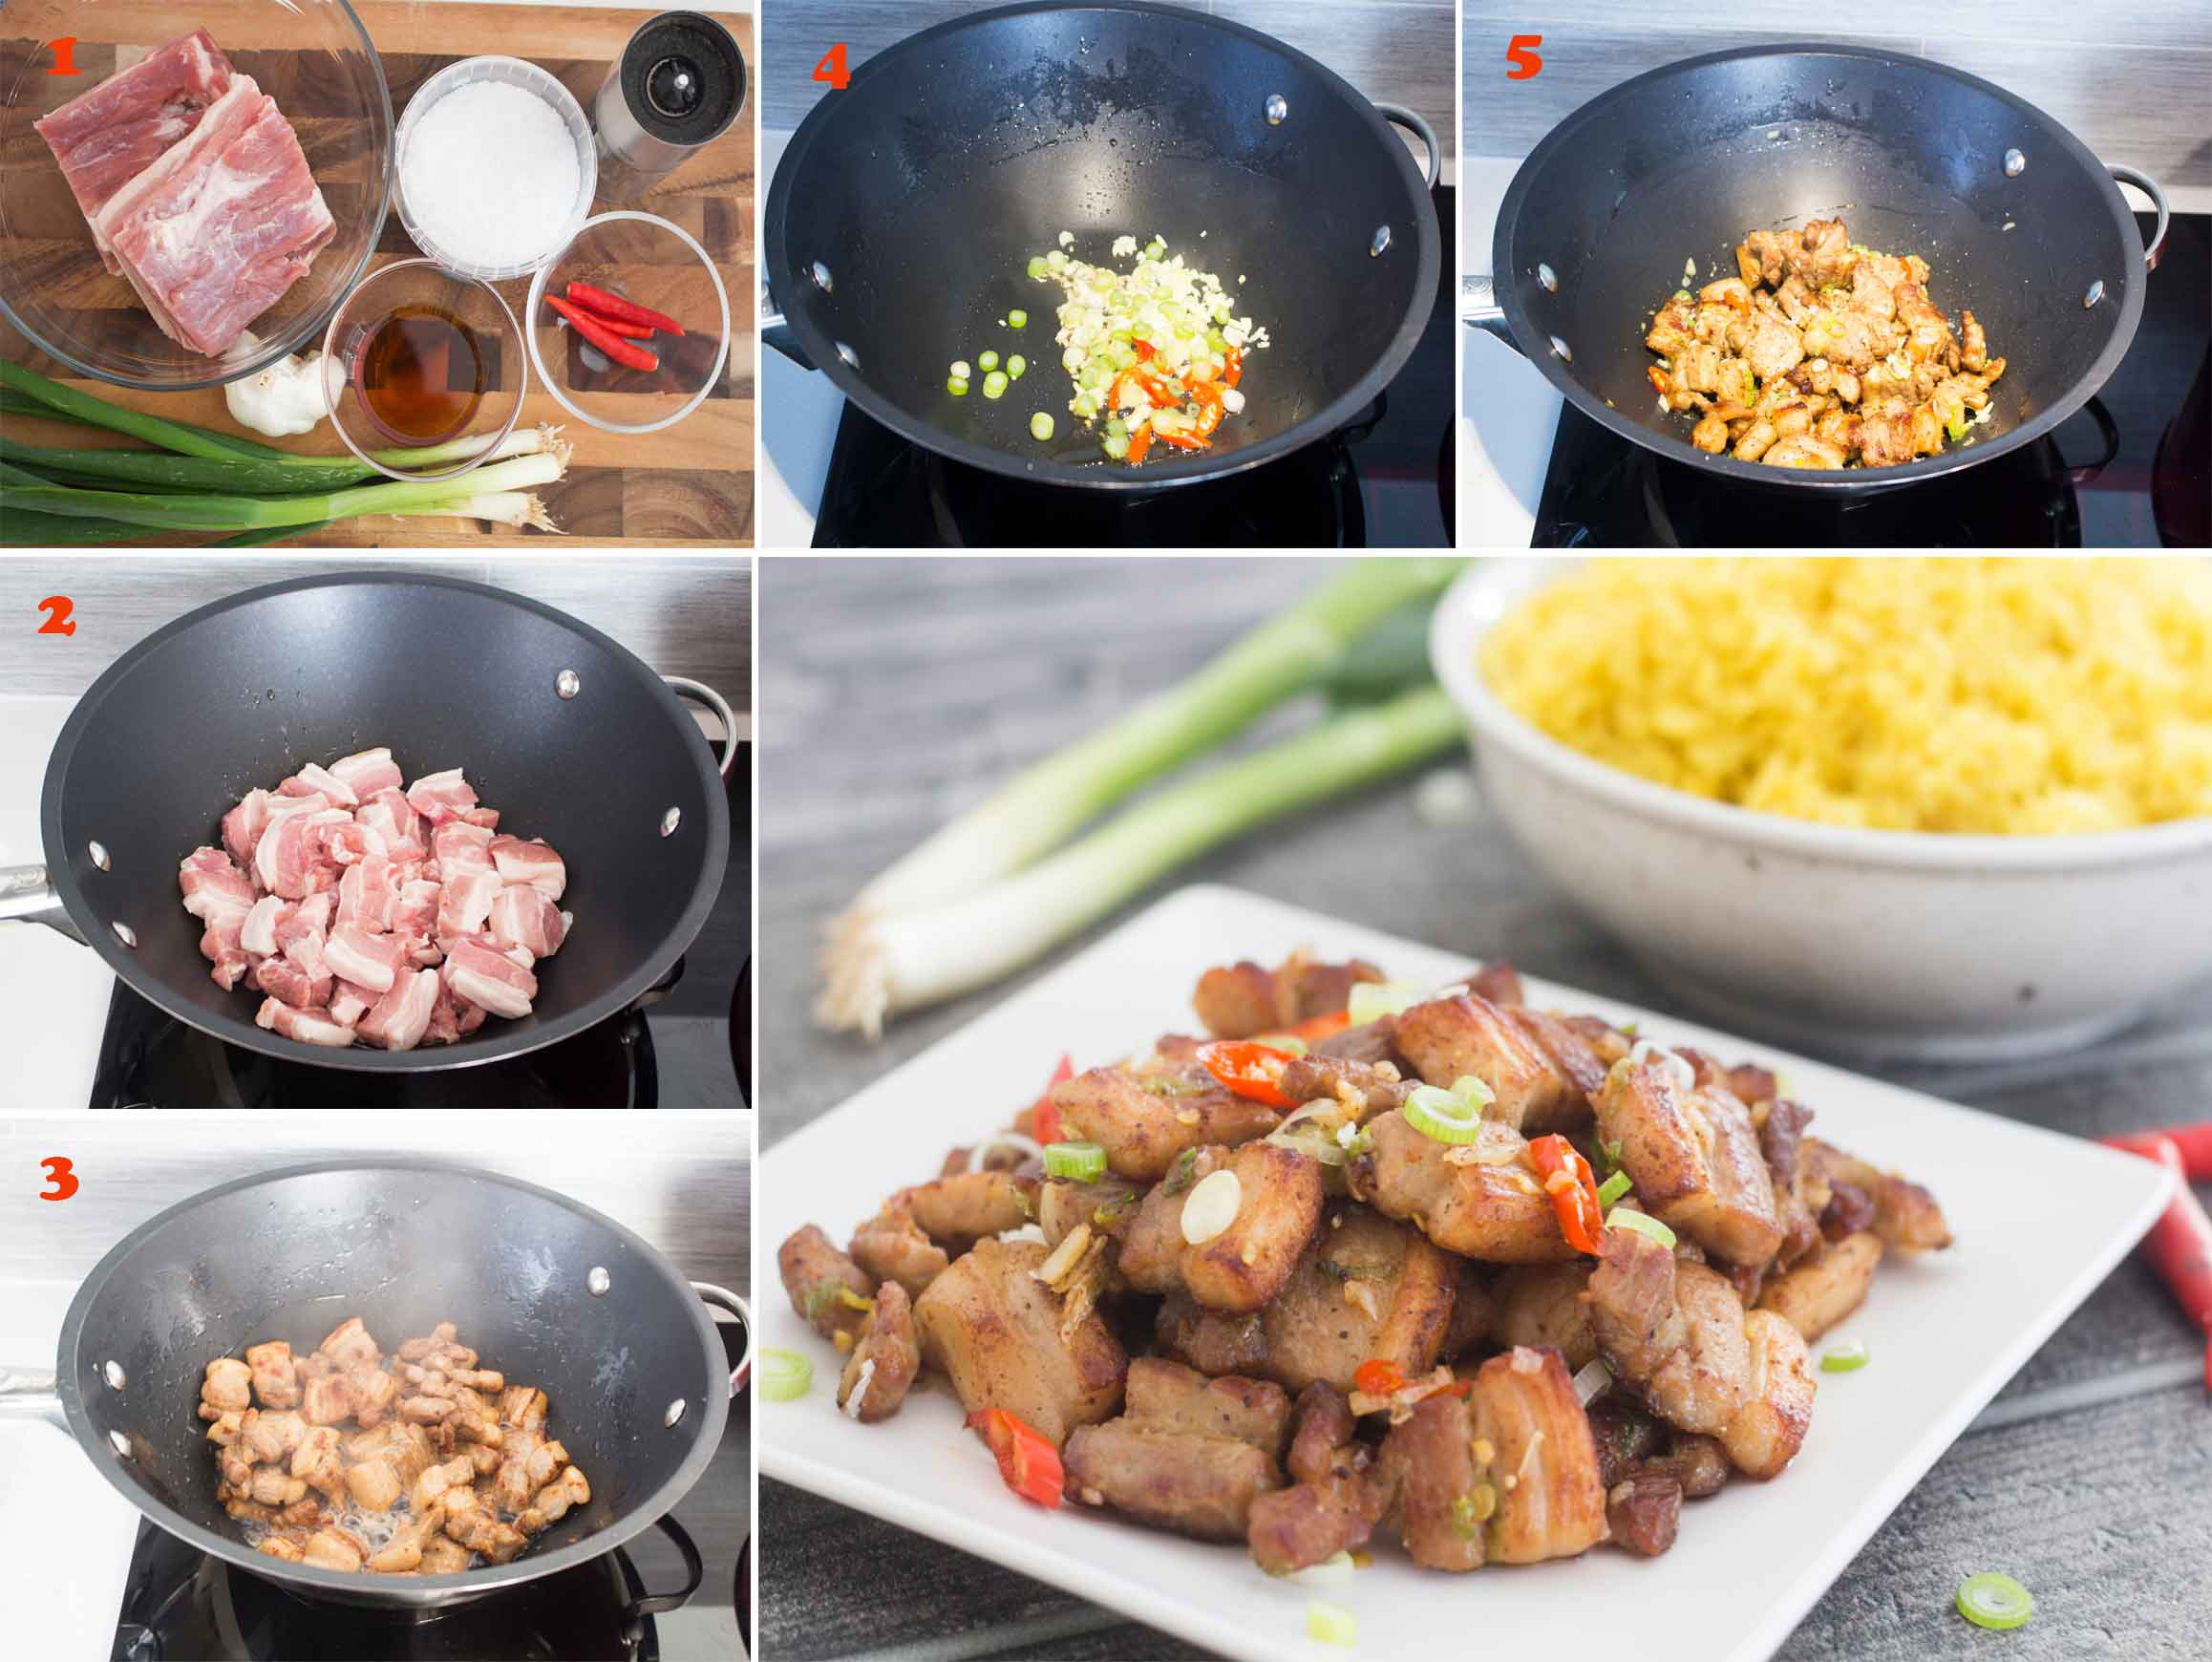 Collage of images showing the steps in making Salt and Pepper Pork Belly.